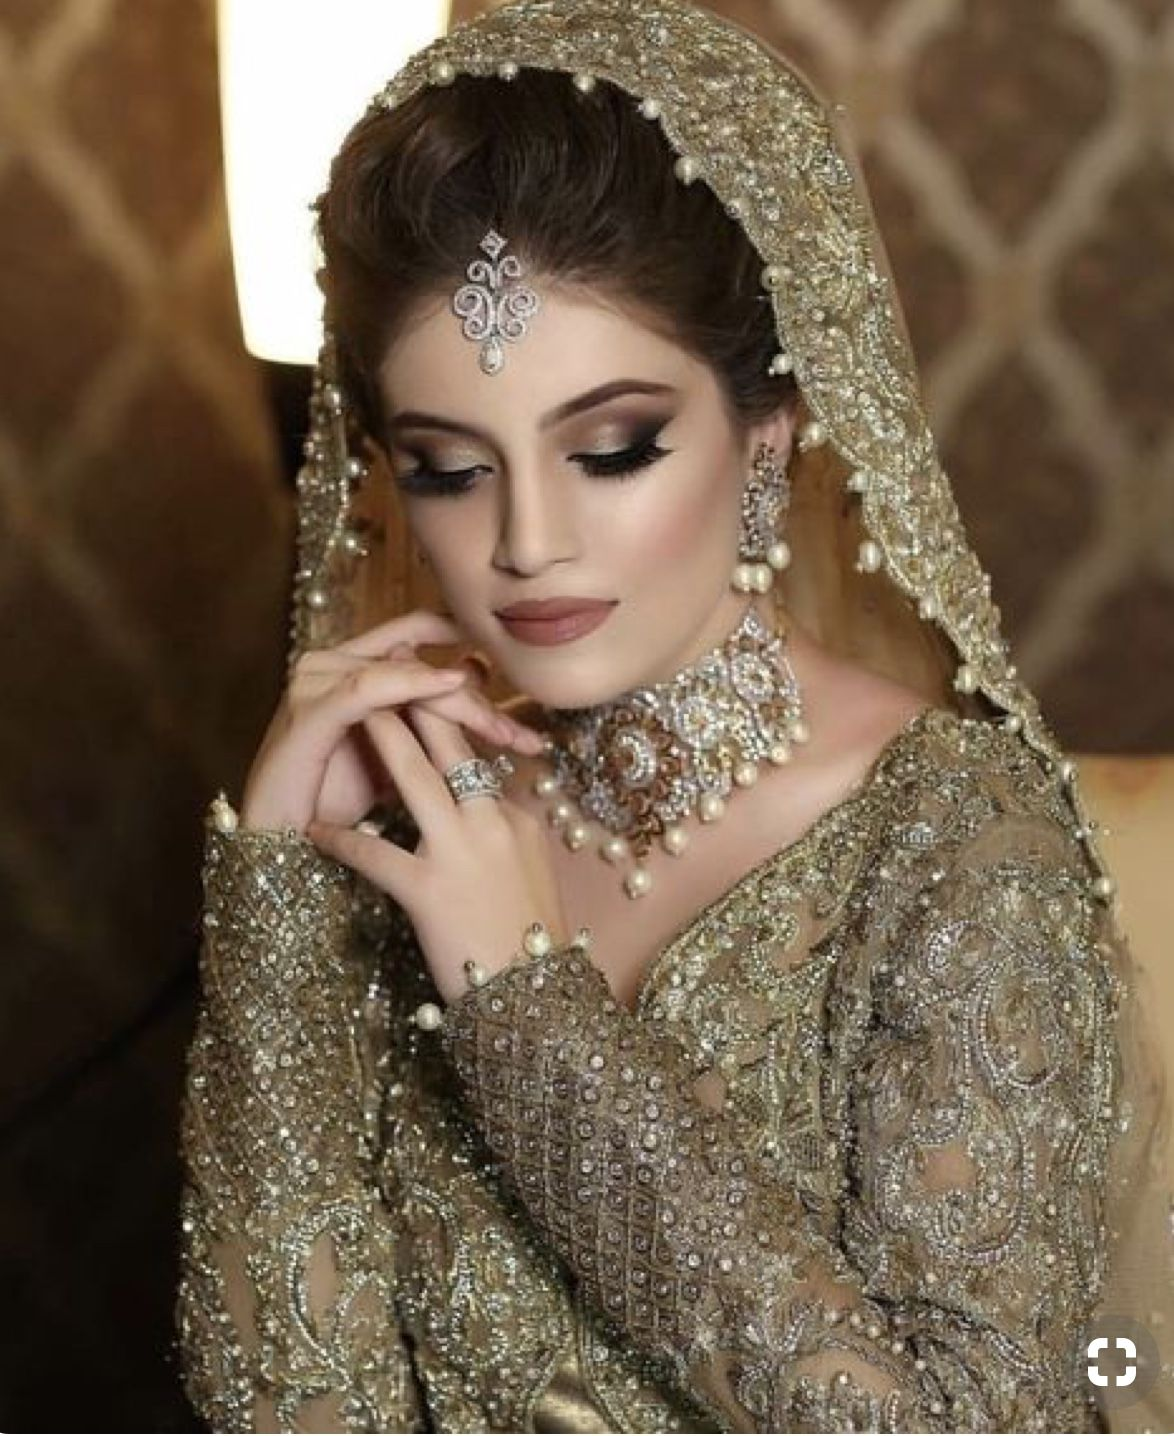 pin by sana:) on wedding ❤️ in 2019 | bridal dresses